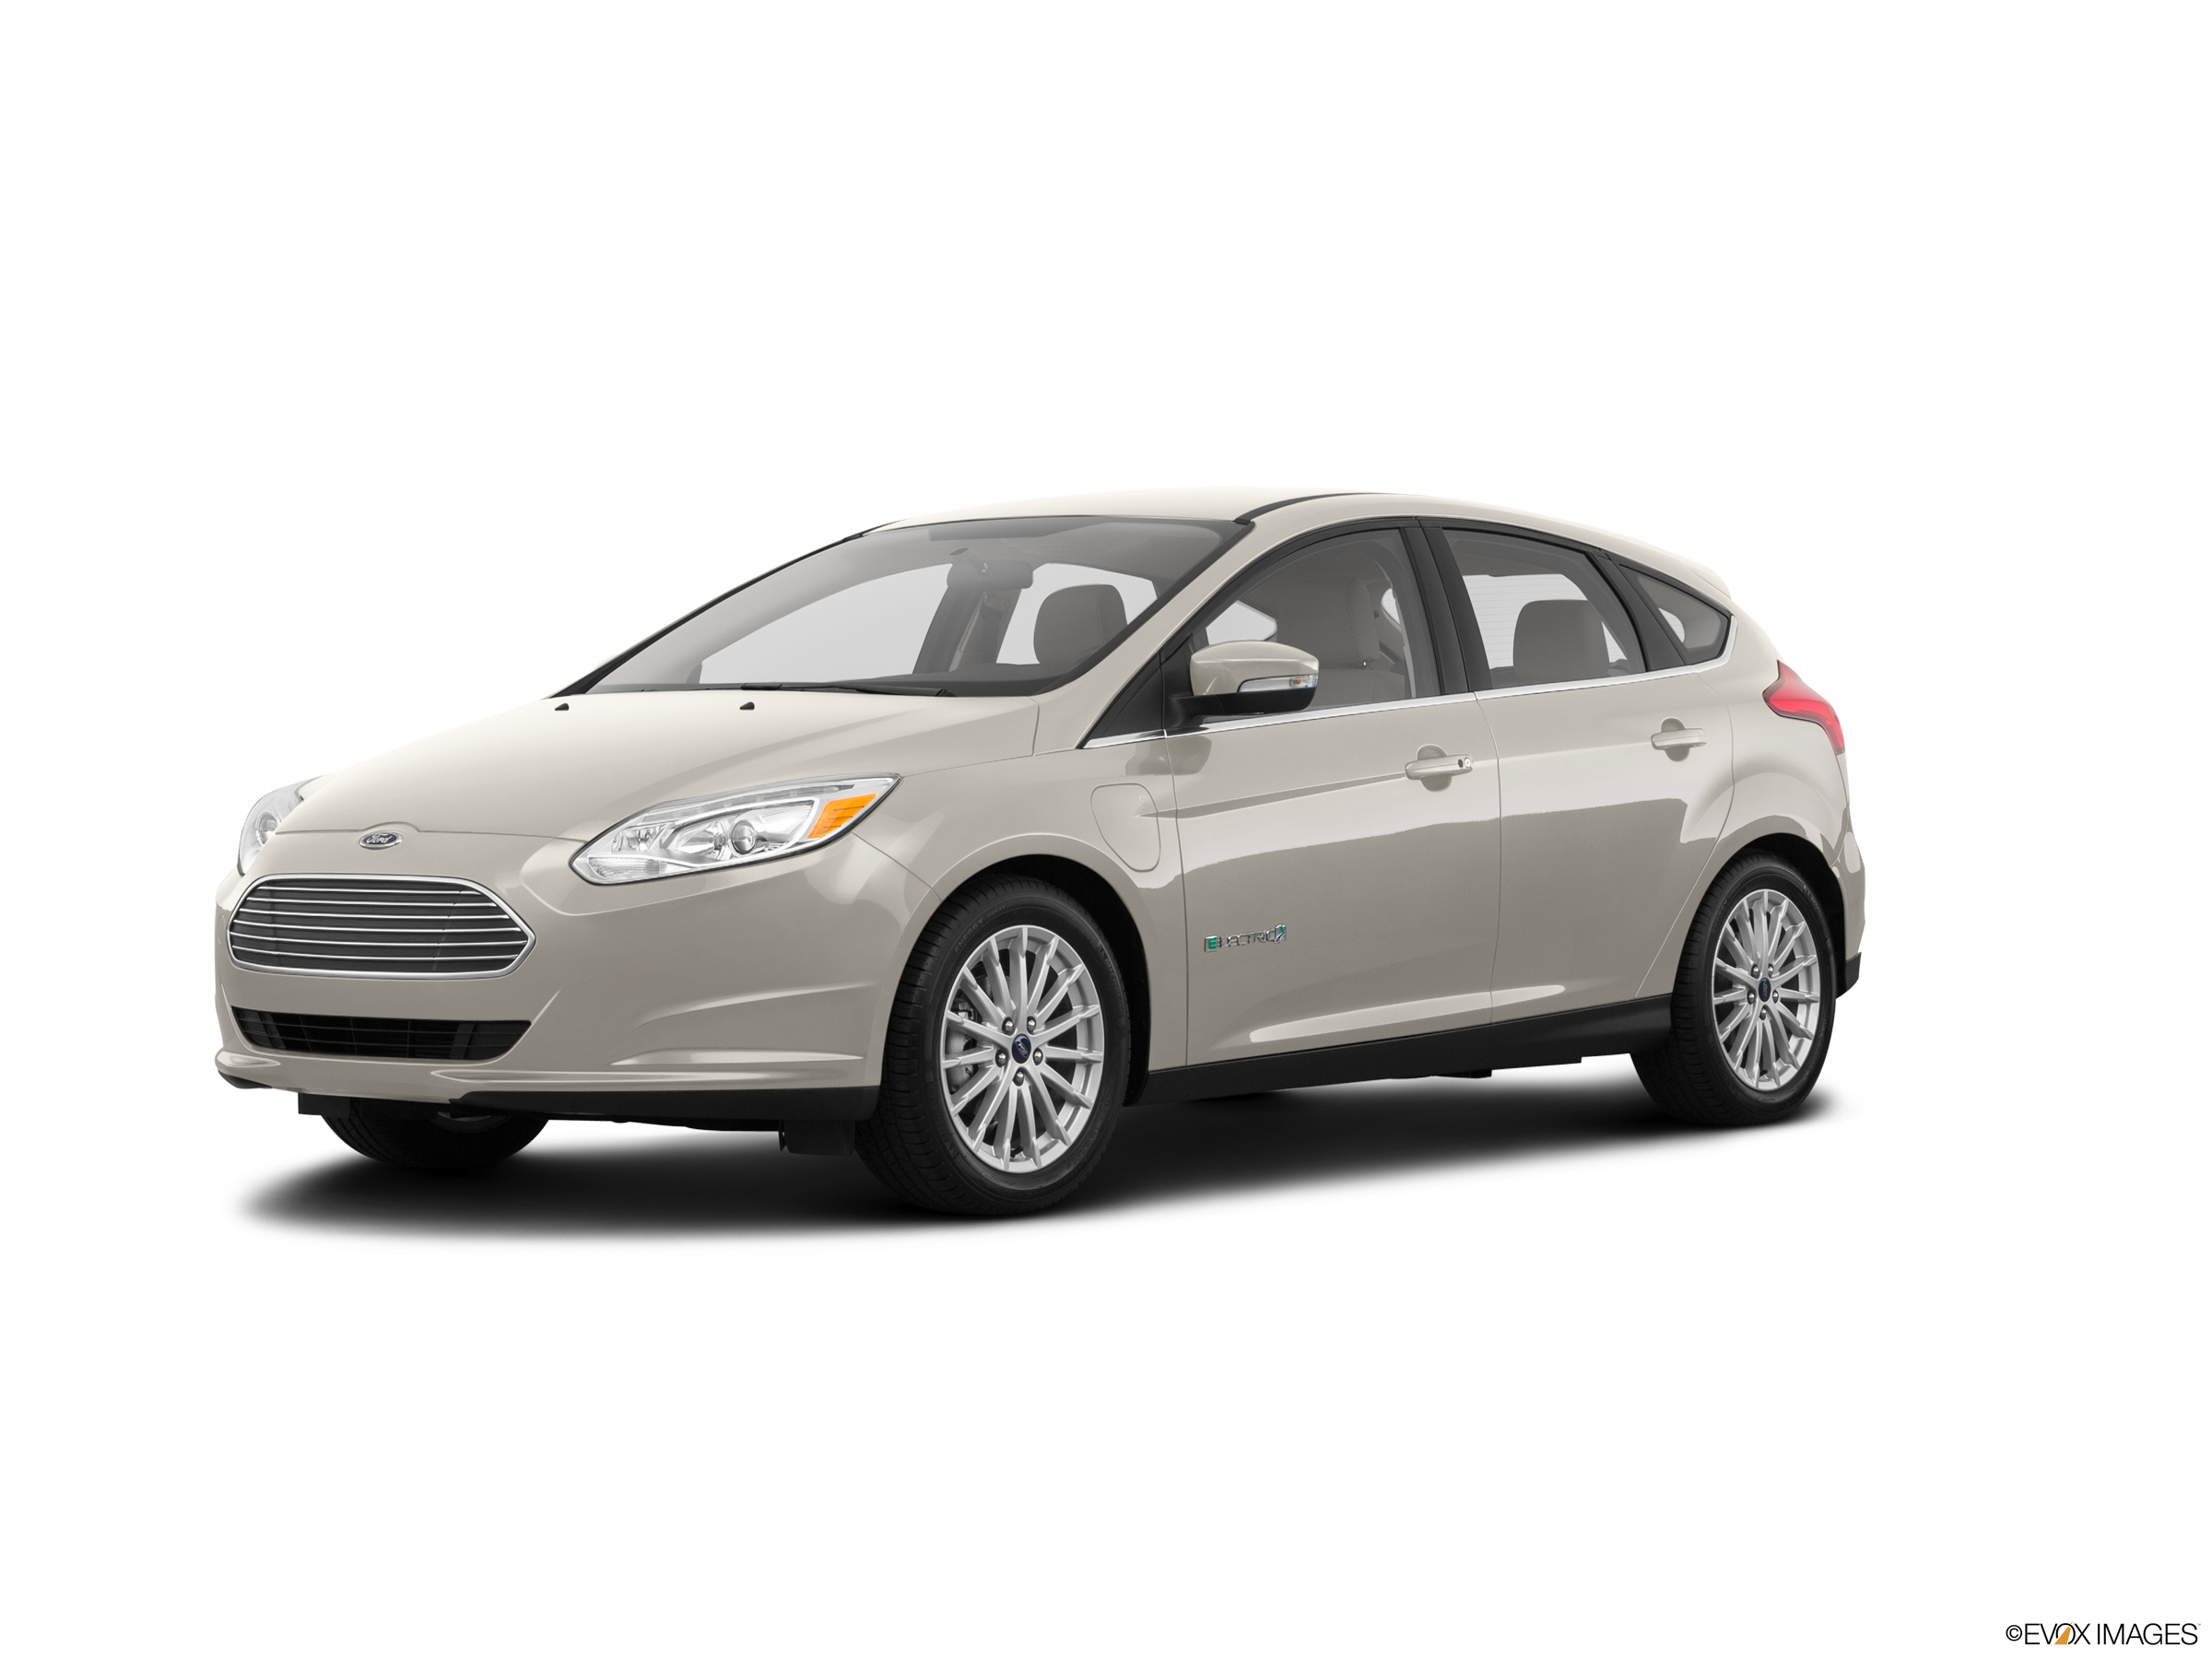 Most Popular Electric Cars of 2018 - 2018 Ford Focus